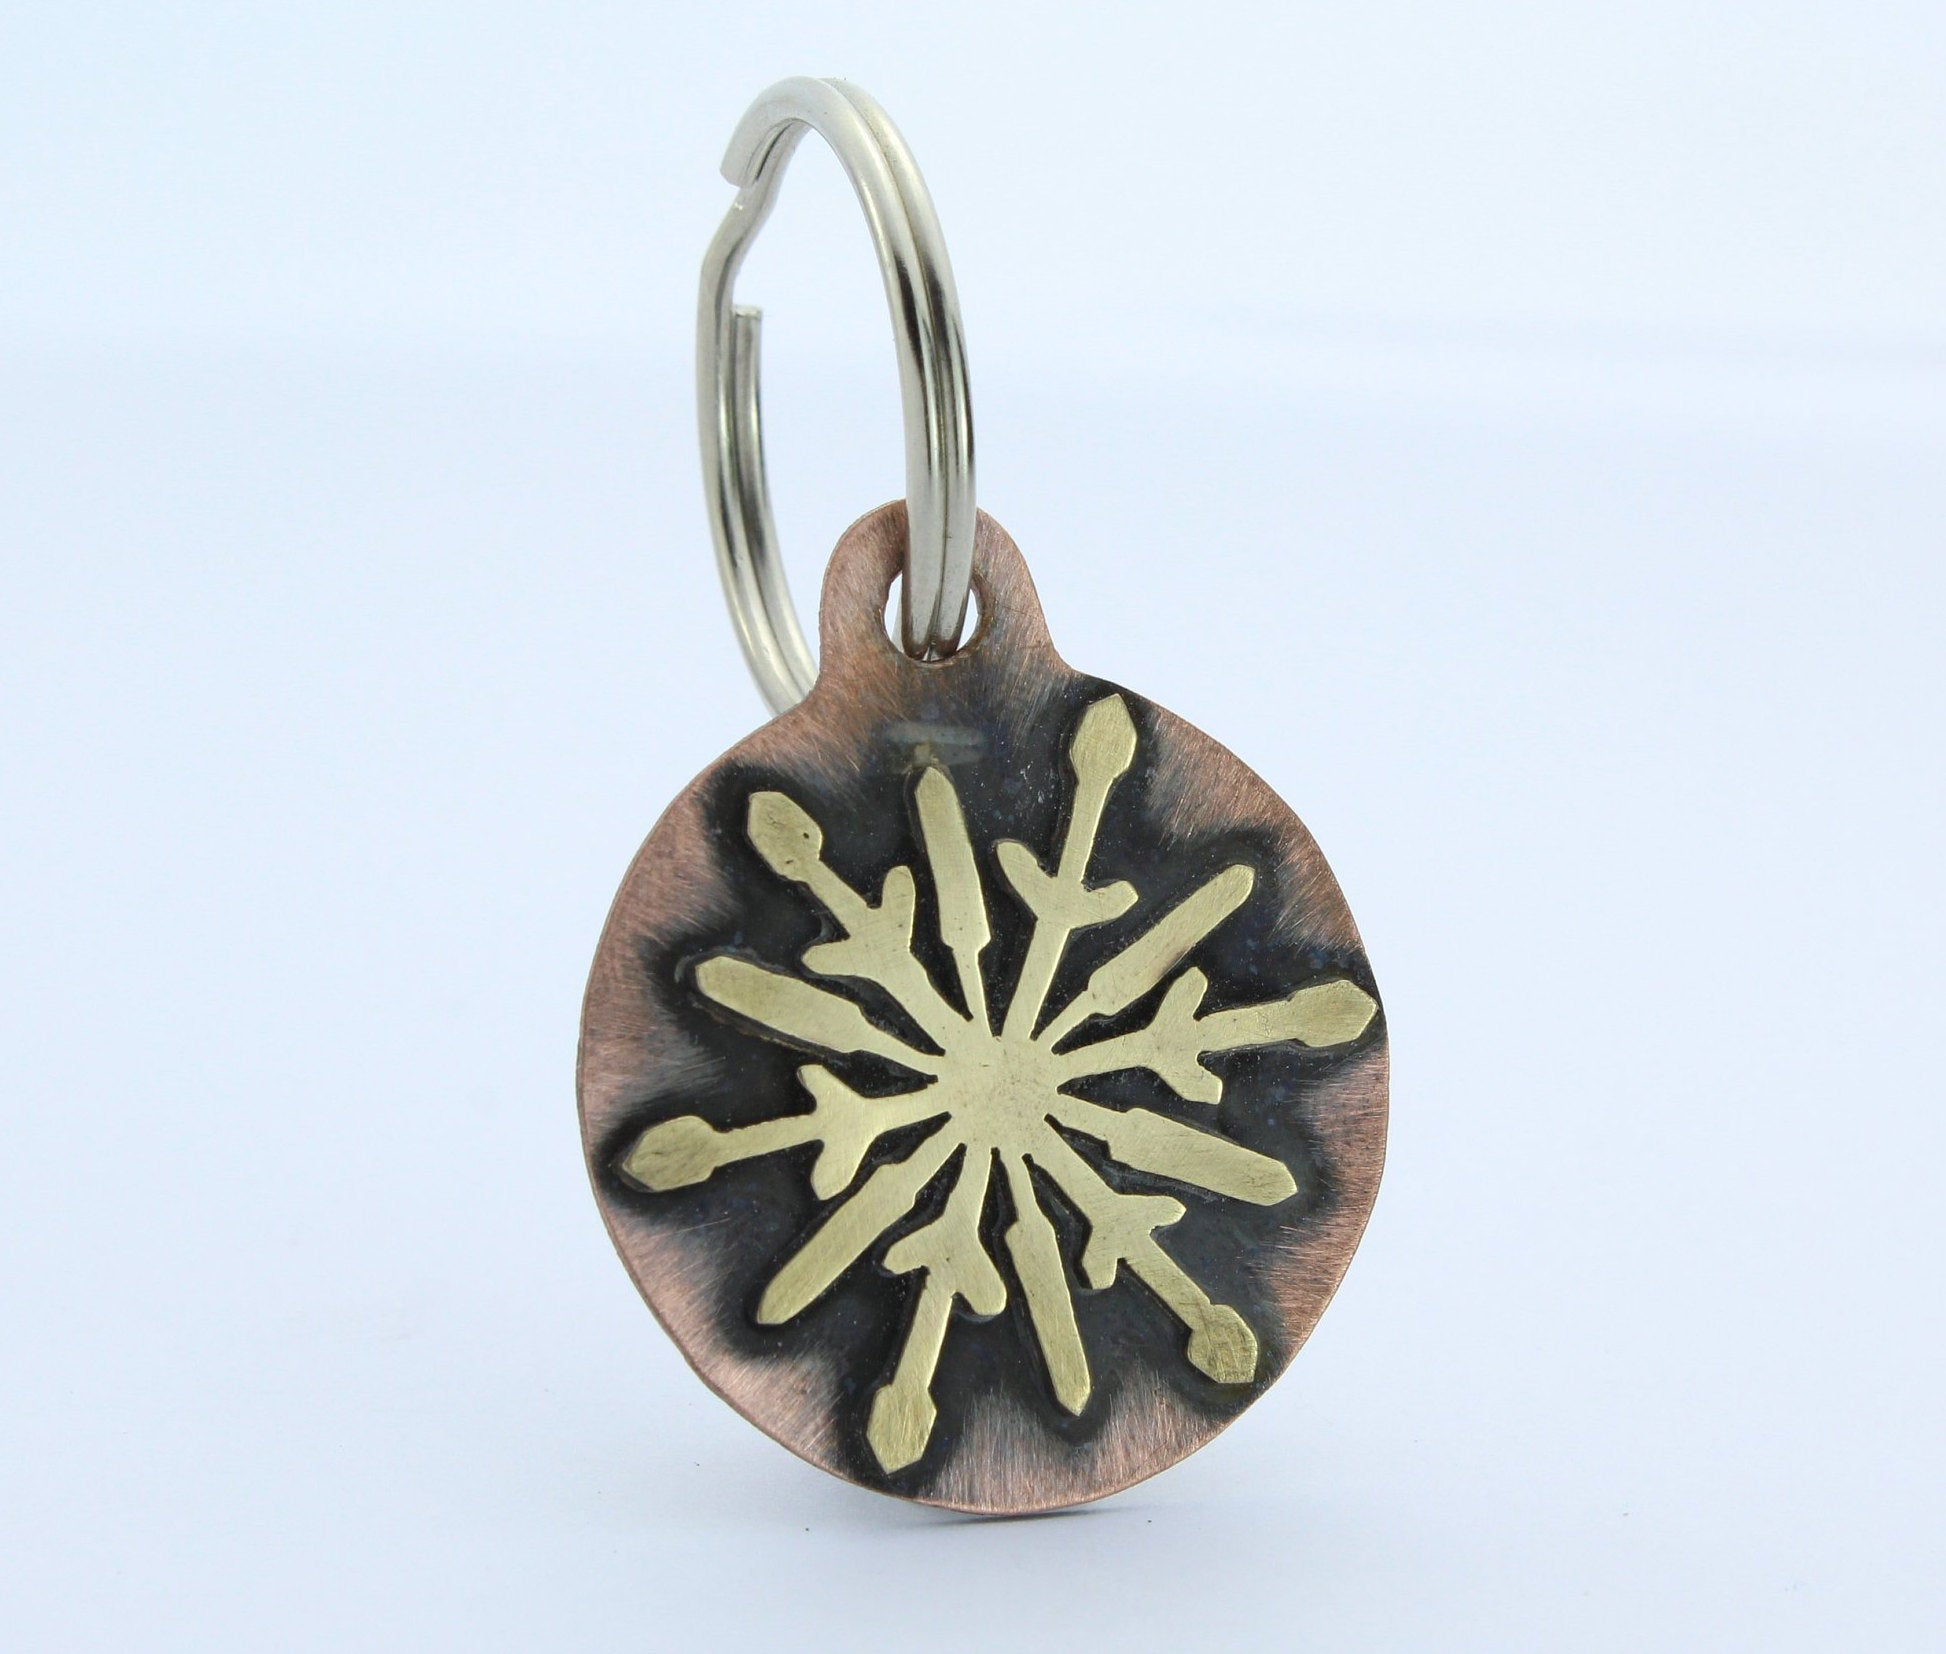 Copper pet tag with brass snowflake made by An American Metalsmith